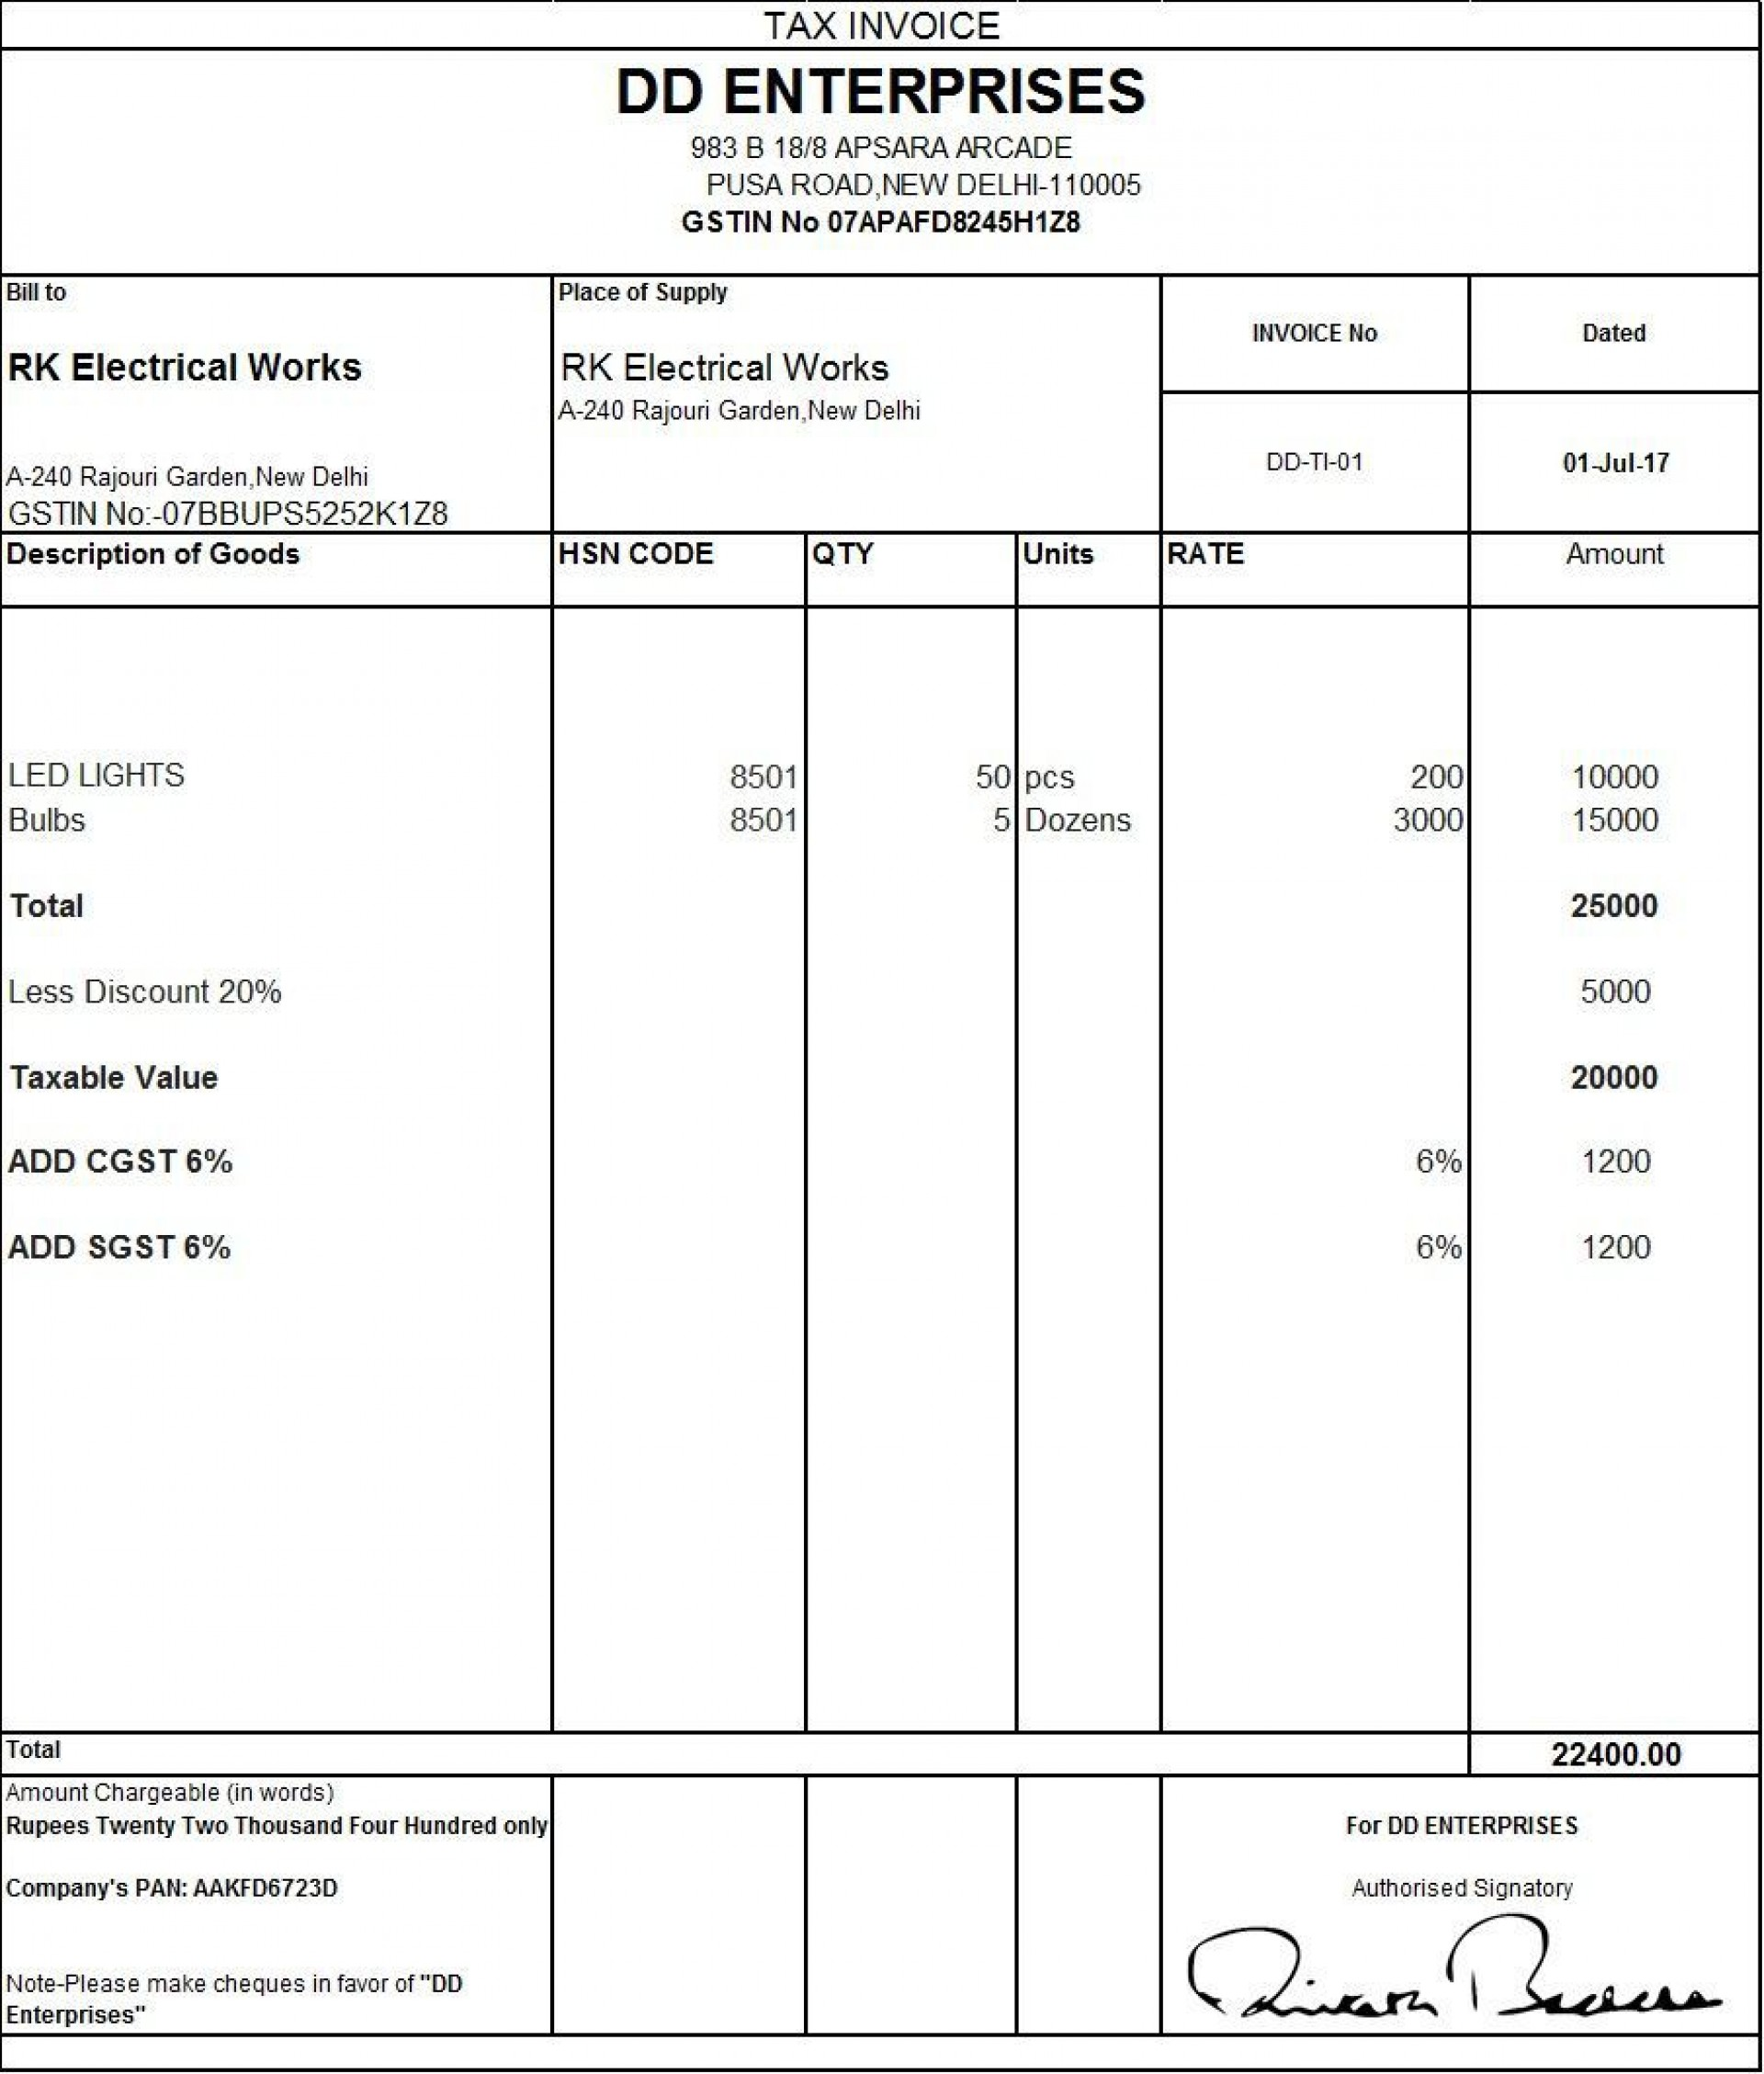 002 Fearsome Excel Gst Invoice Format Download Idea  In Pdf Tally Tax Free Sheet1920